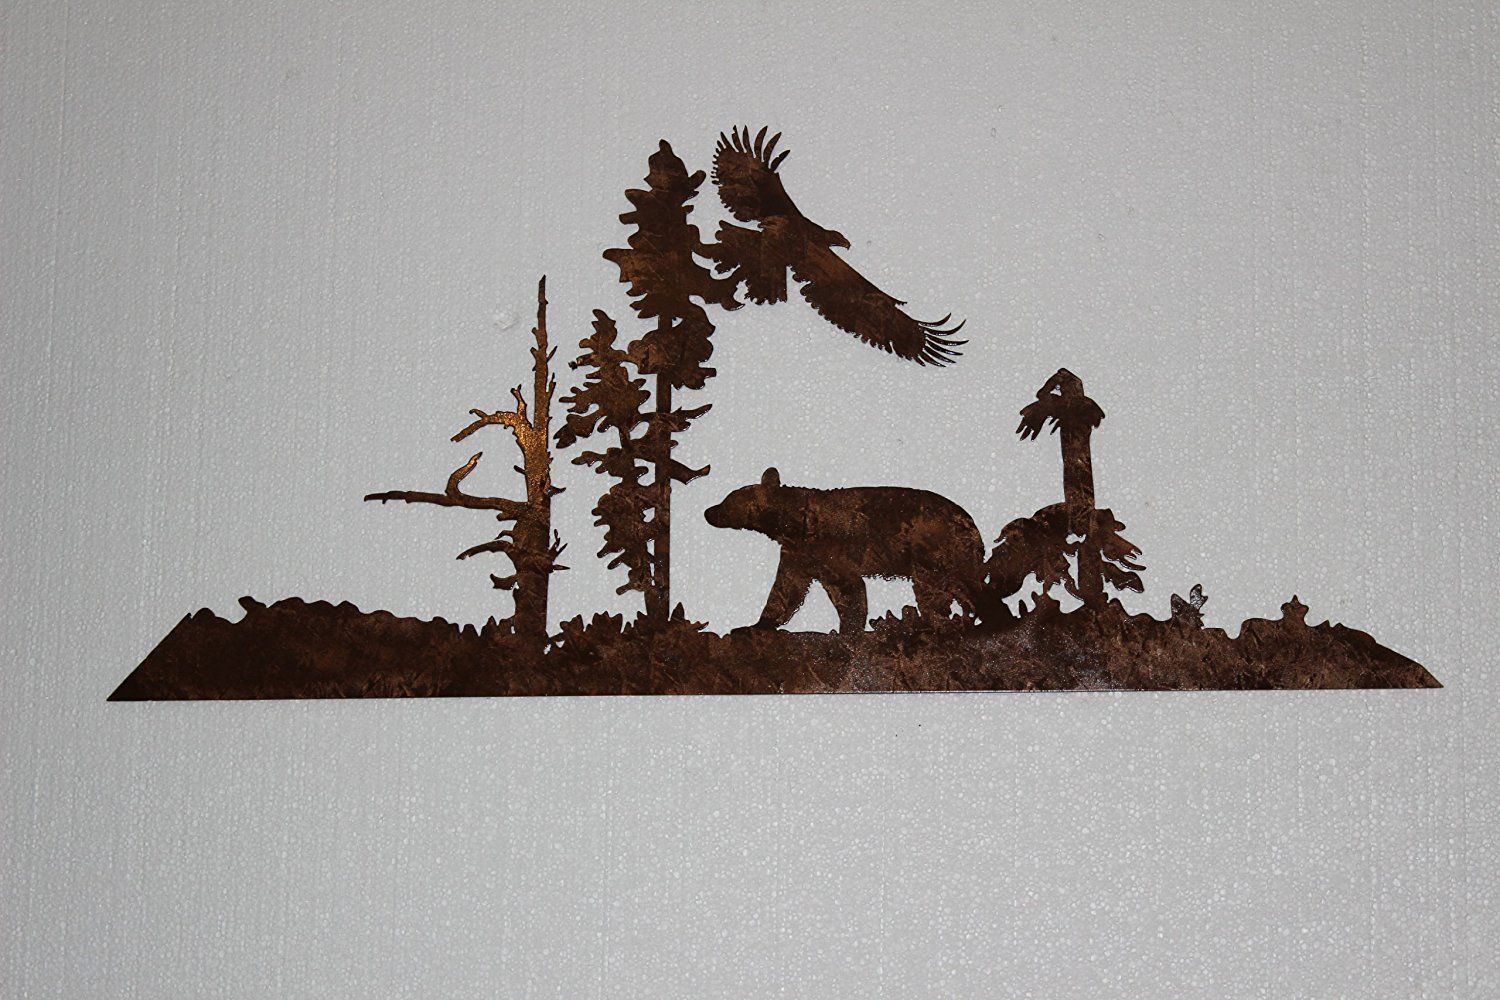 Bear And Eagle Rustic Metal Wall Art Shop Home Decor Art Home Rustic Metal Wall Art Eagle Metal Wall Art Metal Tree Wall Art